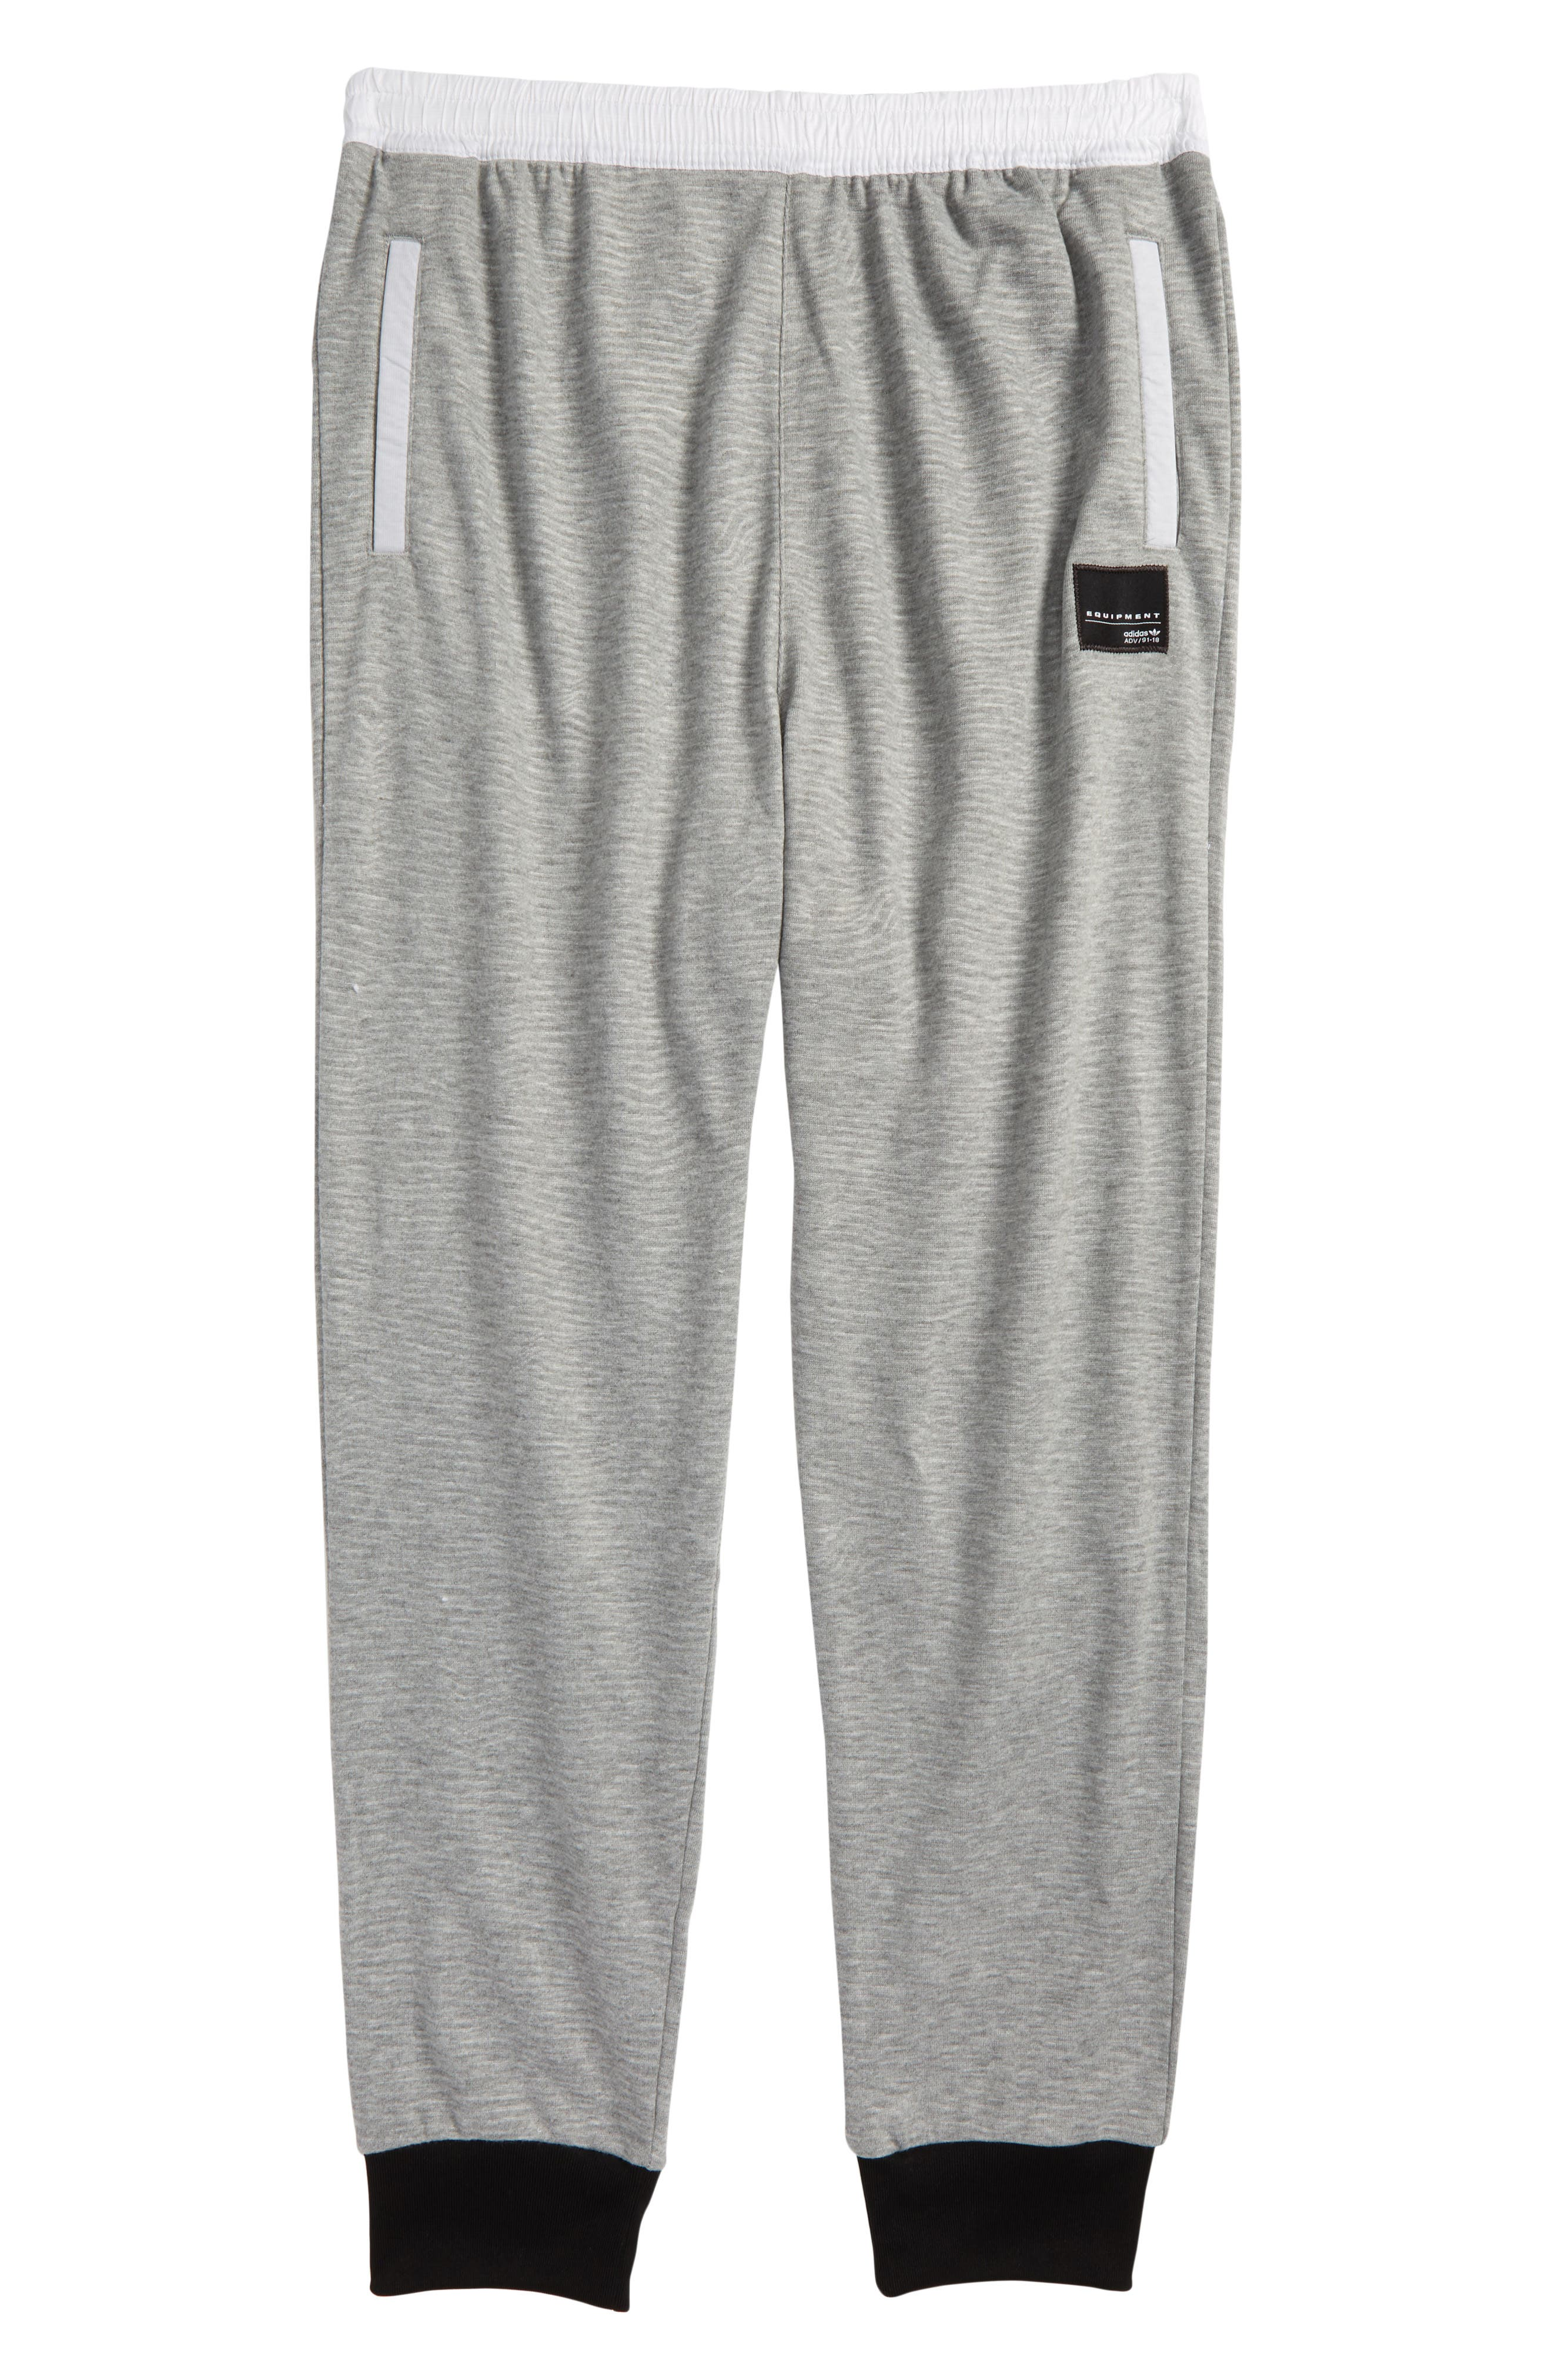 EQT Track Pants,                             Main thumbnail 1, color,                             Medium Grey Heather/ Black